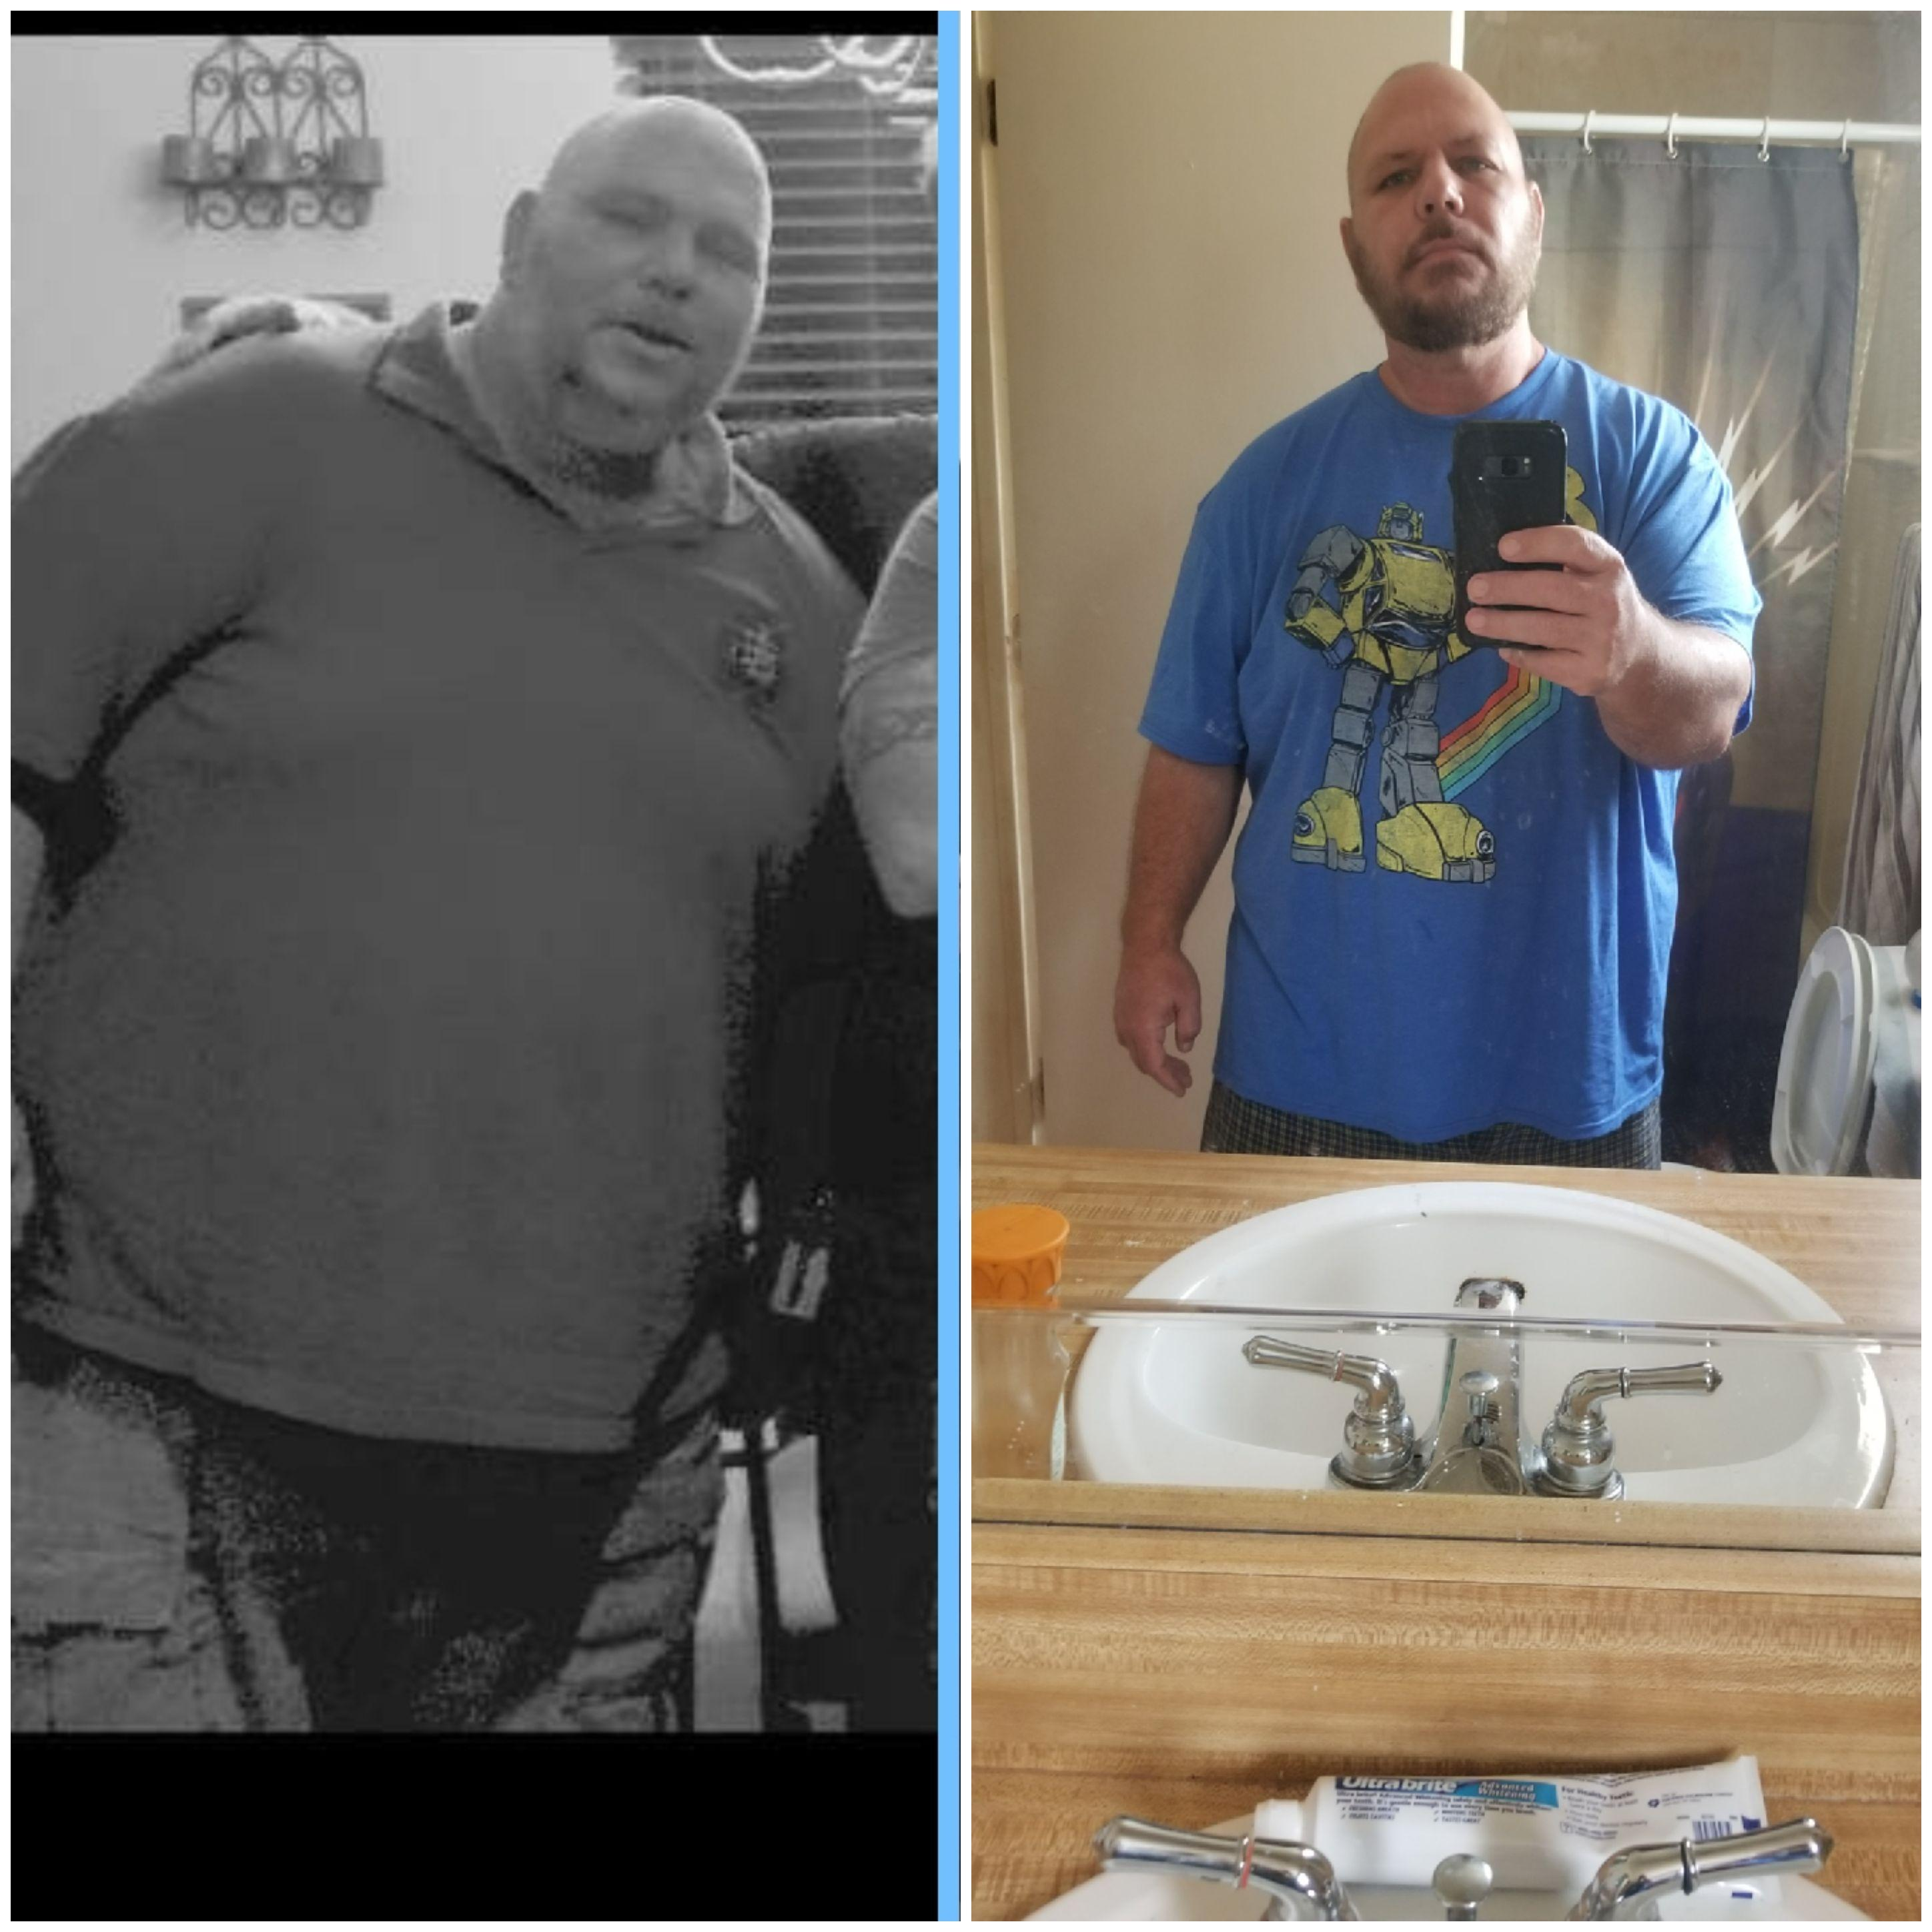 Before and After 140 lbs Weight Loss 5 feet 7 Male 410 lbs to 270 lbs